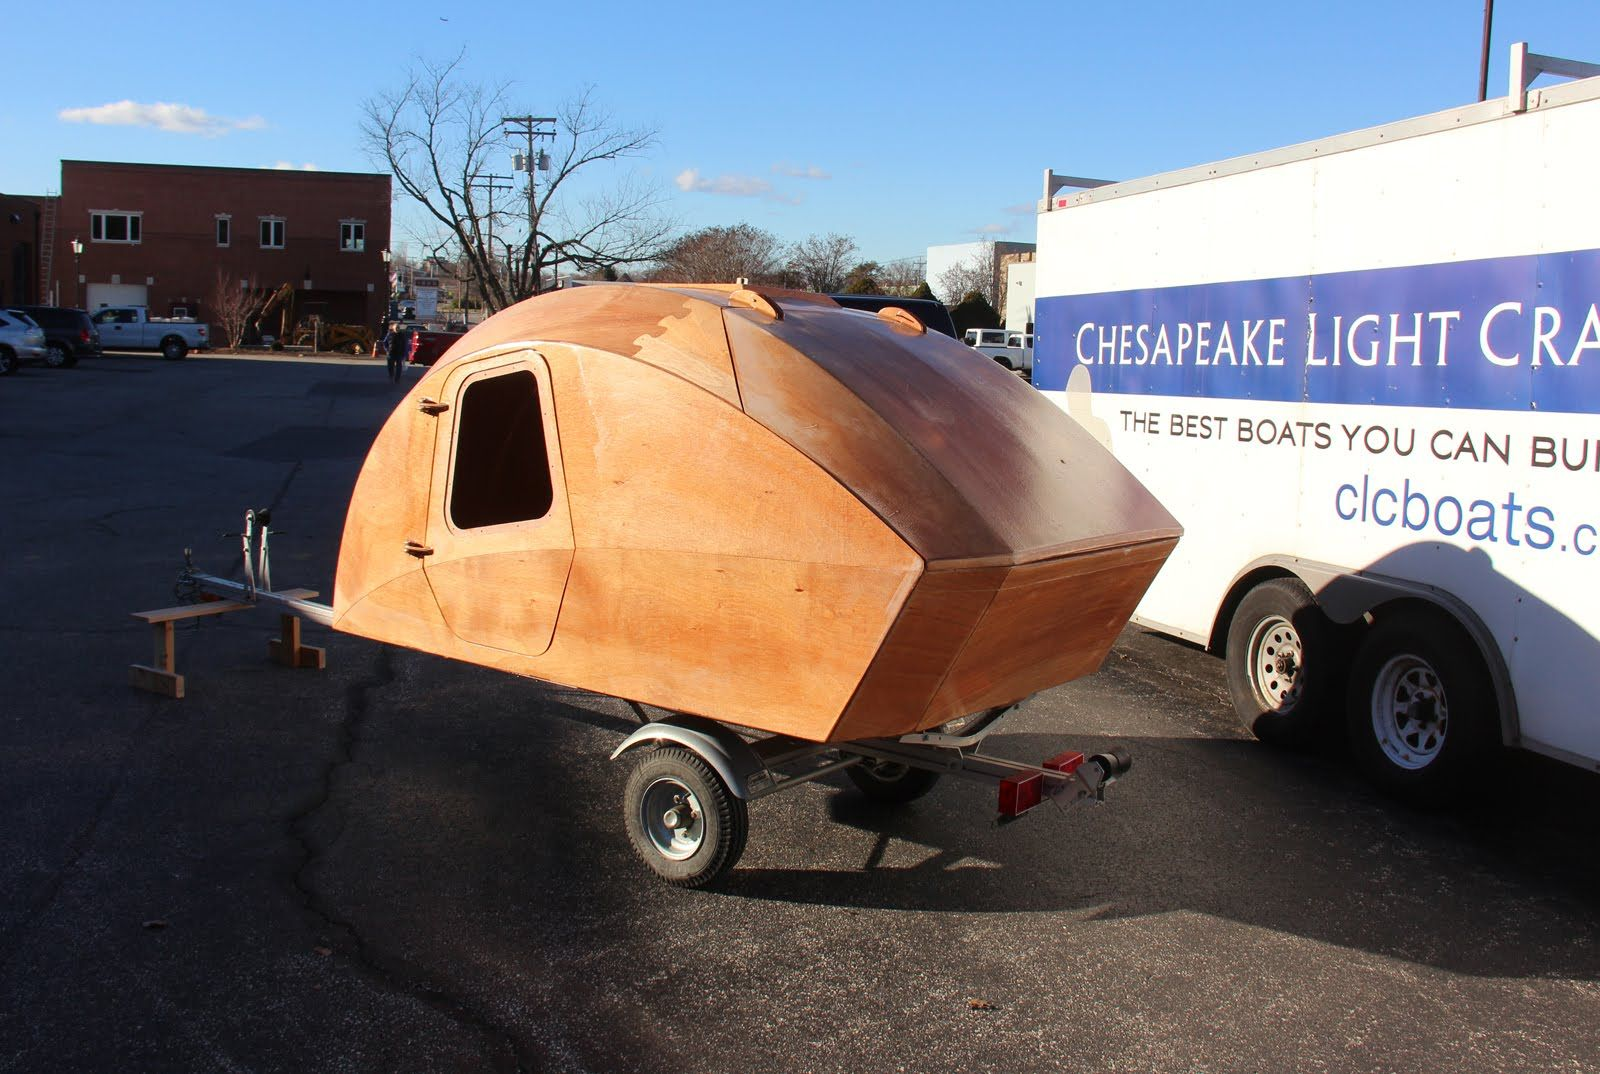 Chesapeake Light Craft Teardrop Trailer Kit Sneak Preview